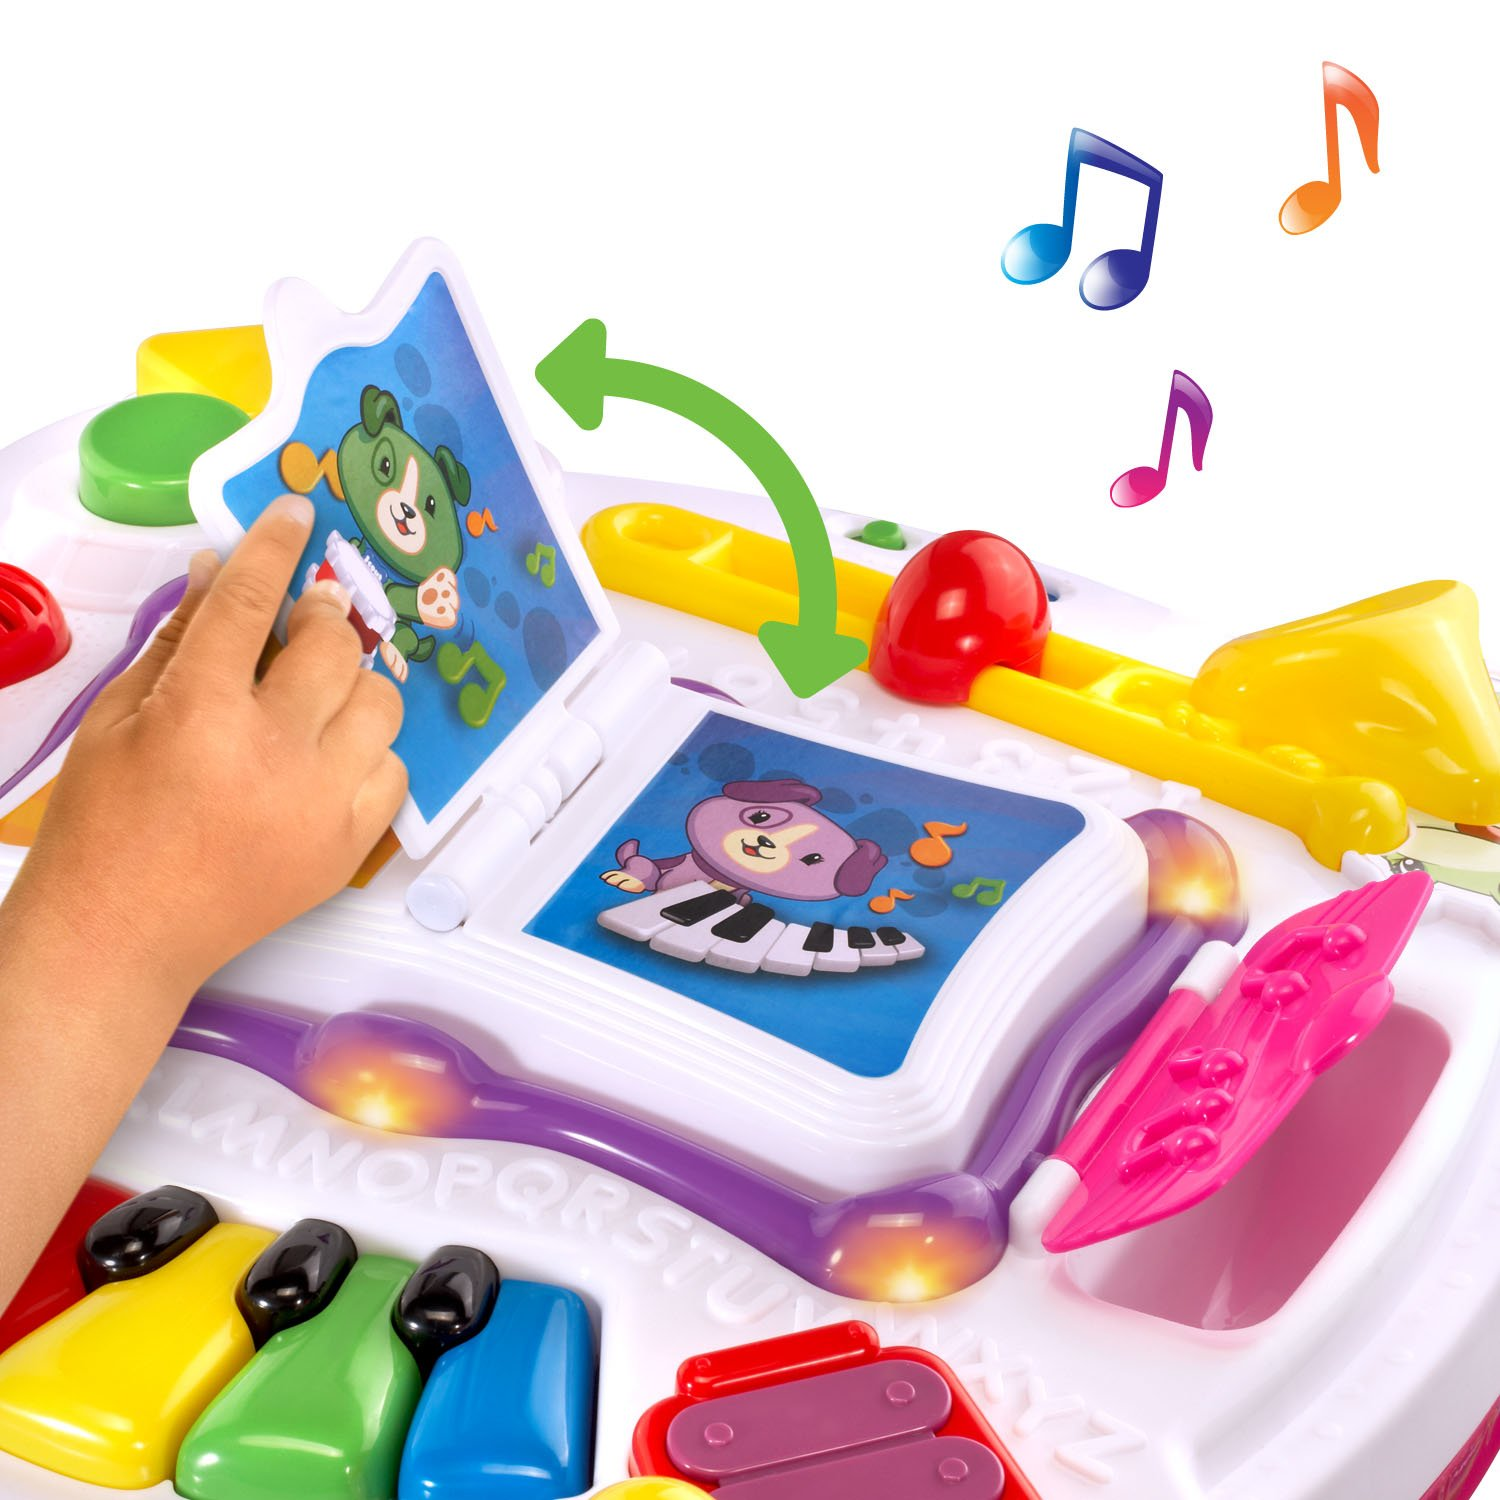 LeapFrog Learn and Groove Musical Table Activity Center Amazon Exclusive, Pink by LeapFrog (Image #3)